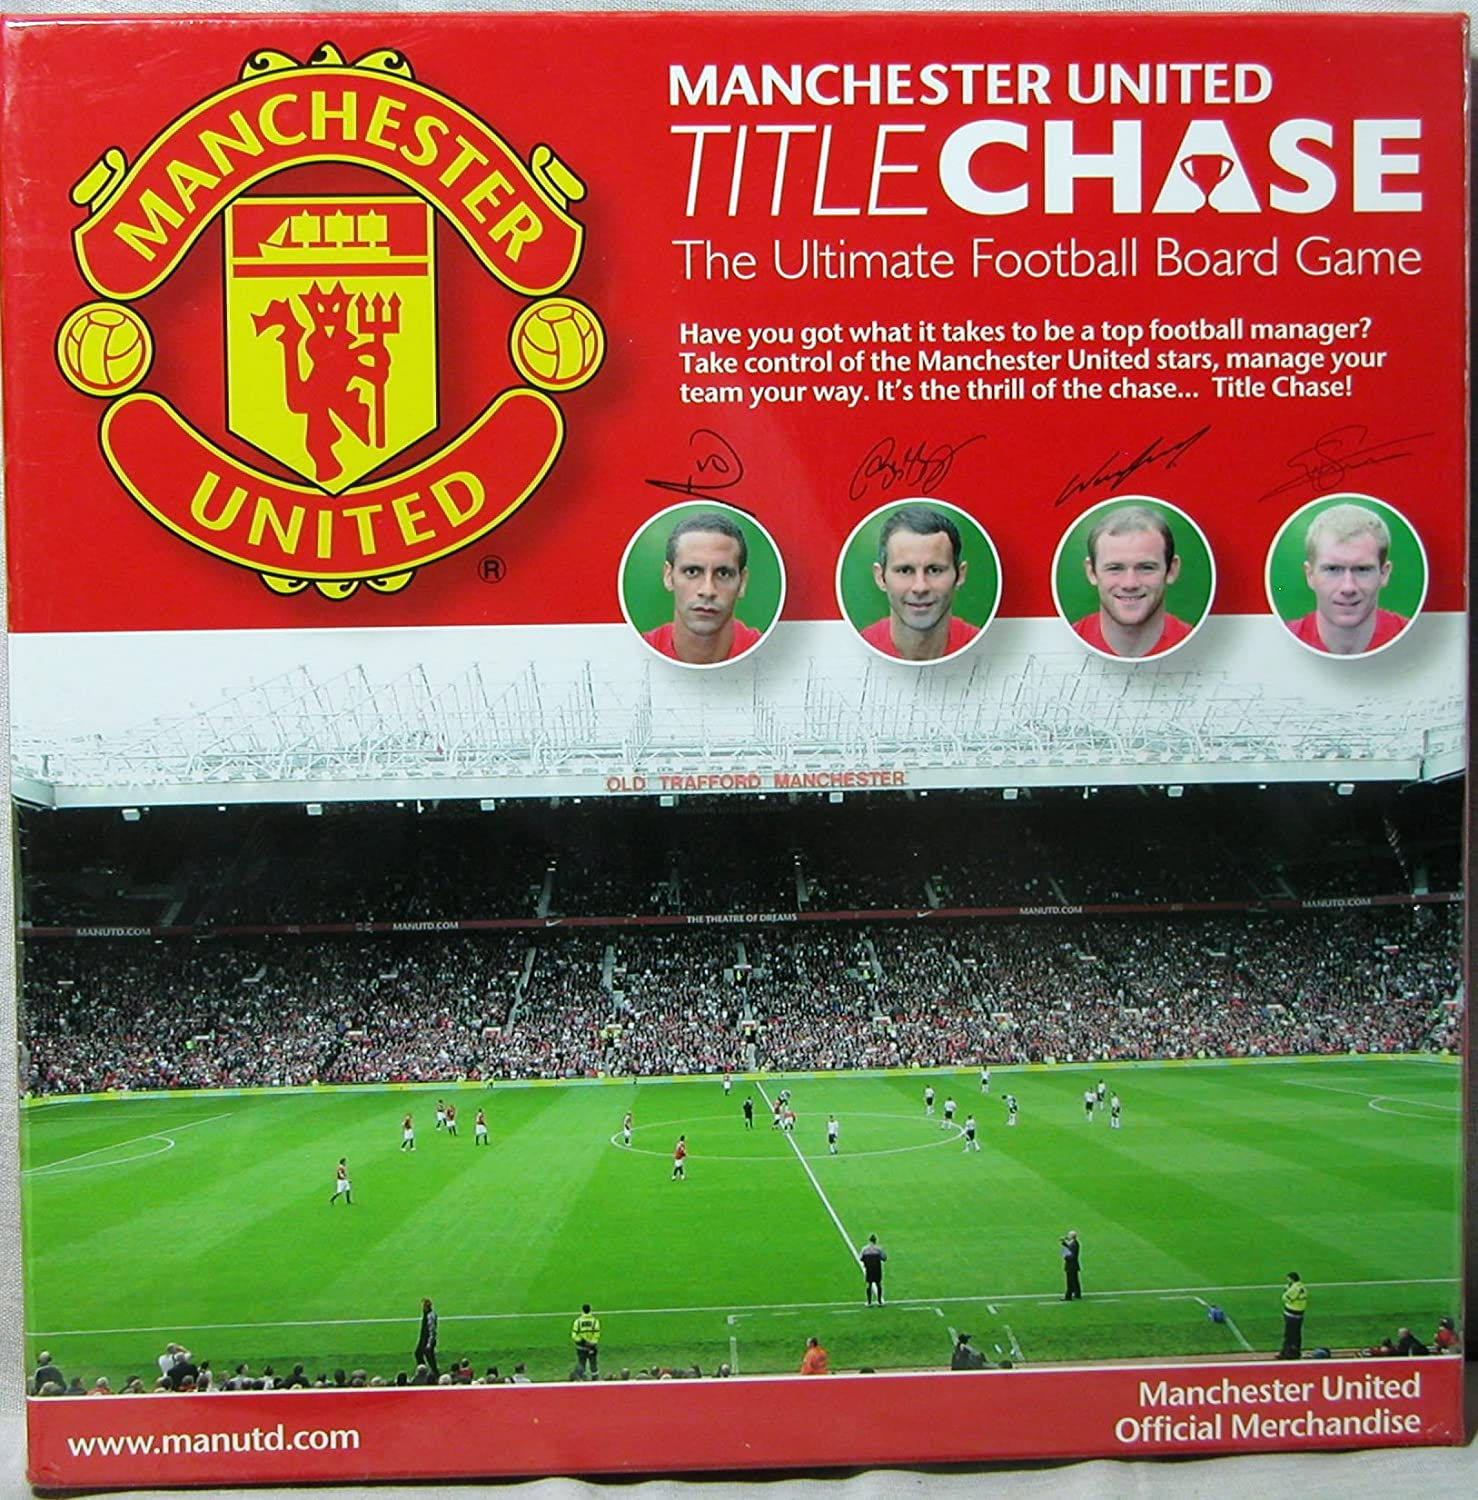 Manchester united title chase the ultimate football board game manchester united title chase the ultimate football board game amazon toys games voltagebd Image collections